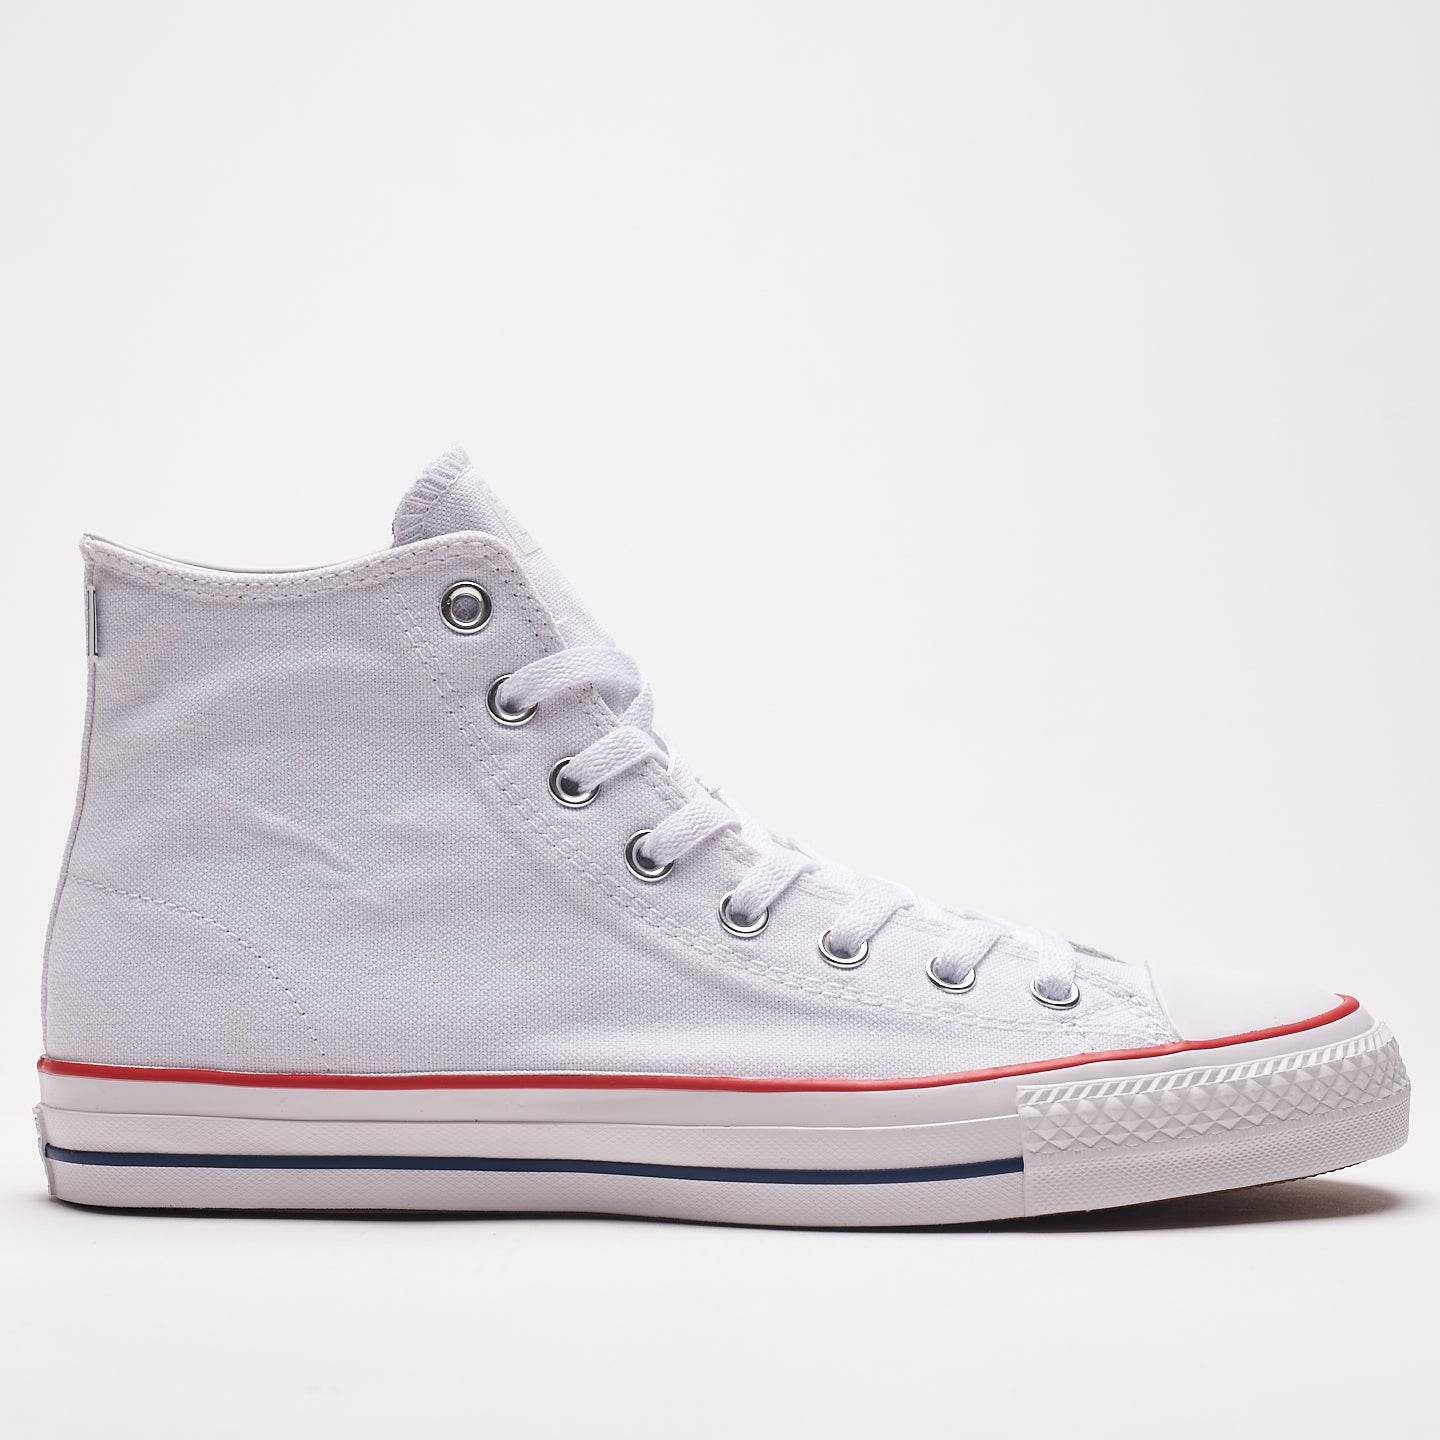 CONVERSE M'S FOOTWEAR Wht/Red 8 CHUCK TAYLOR ALL STAR PRO HIGH TOP WHITE